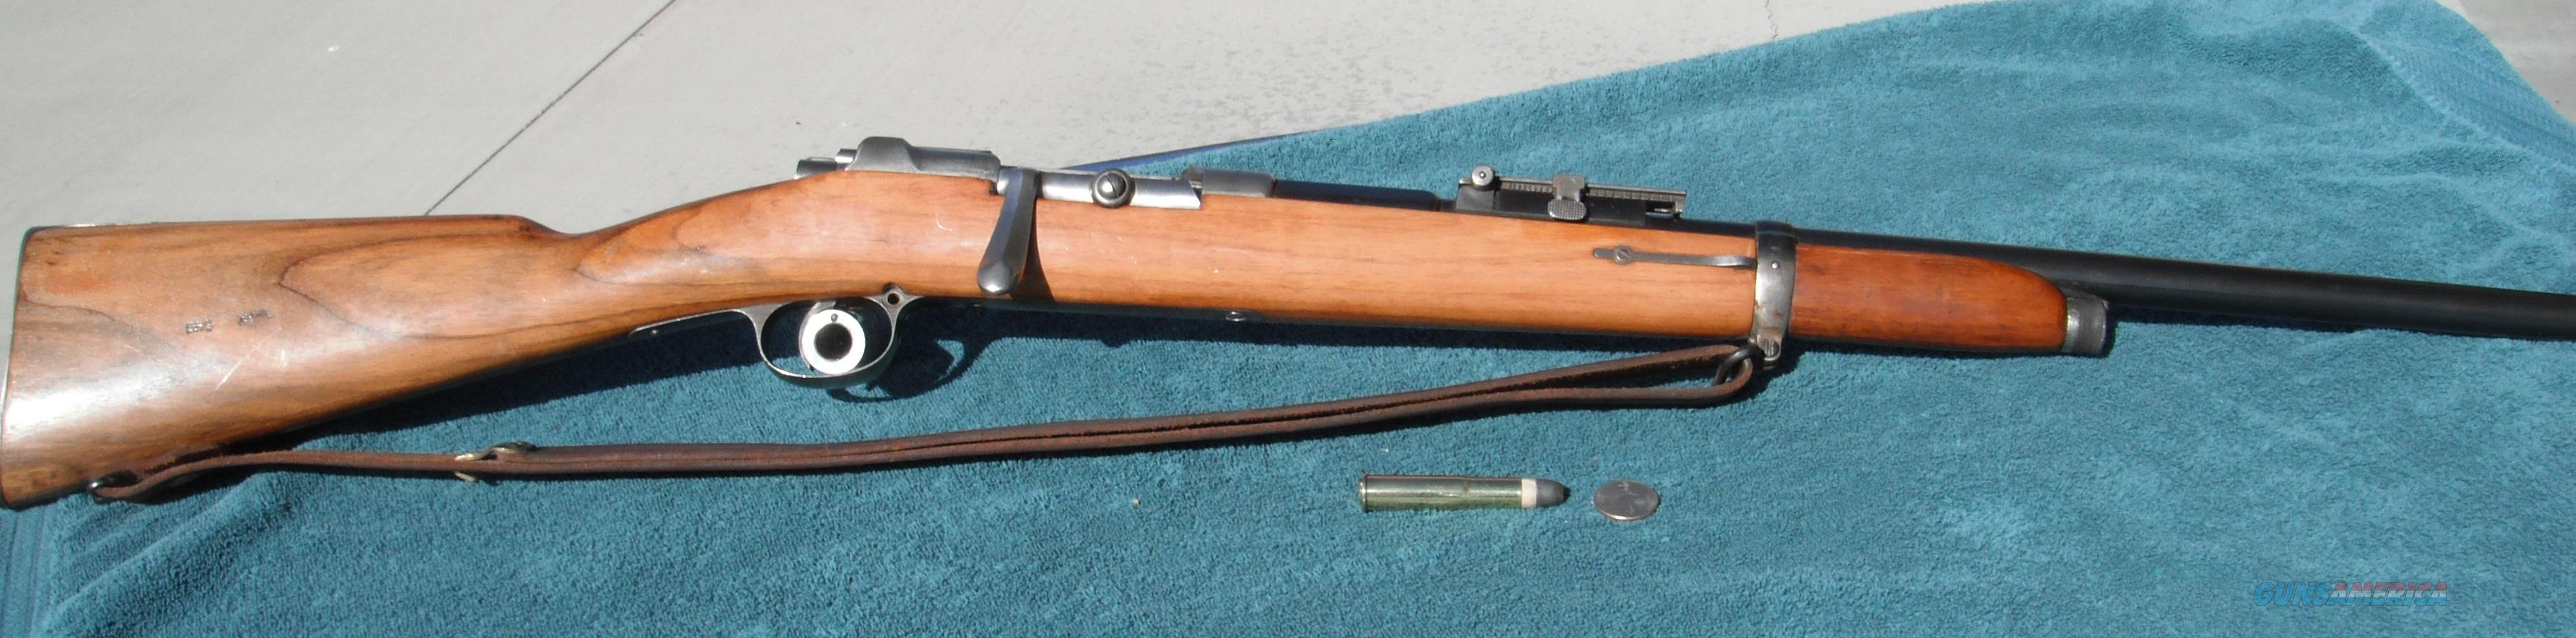 Mauser I.G. Mod. 71/84 10.95mm  Guns > Rifles > Mauser Rifles > German